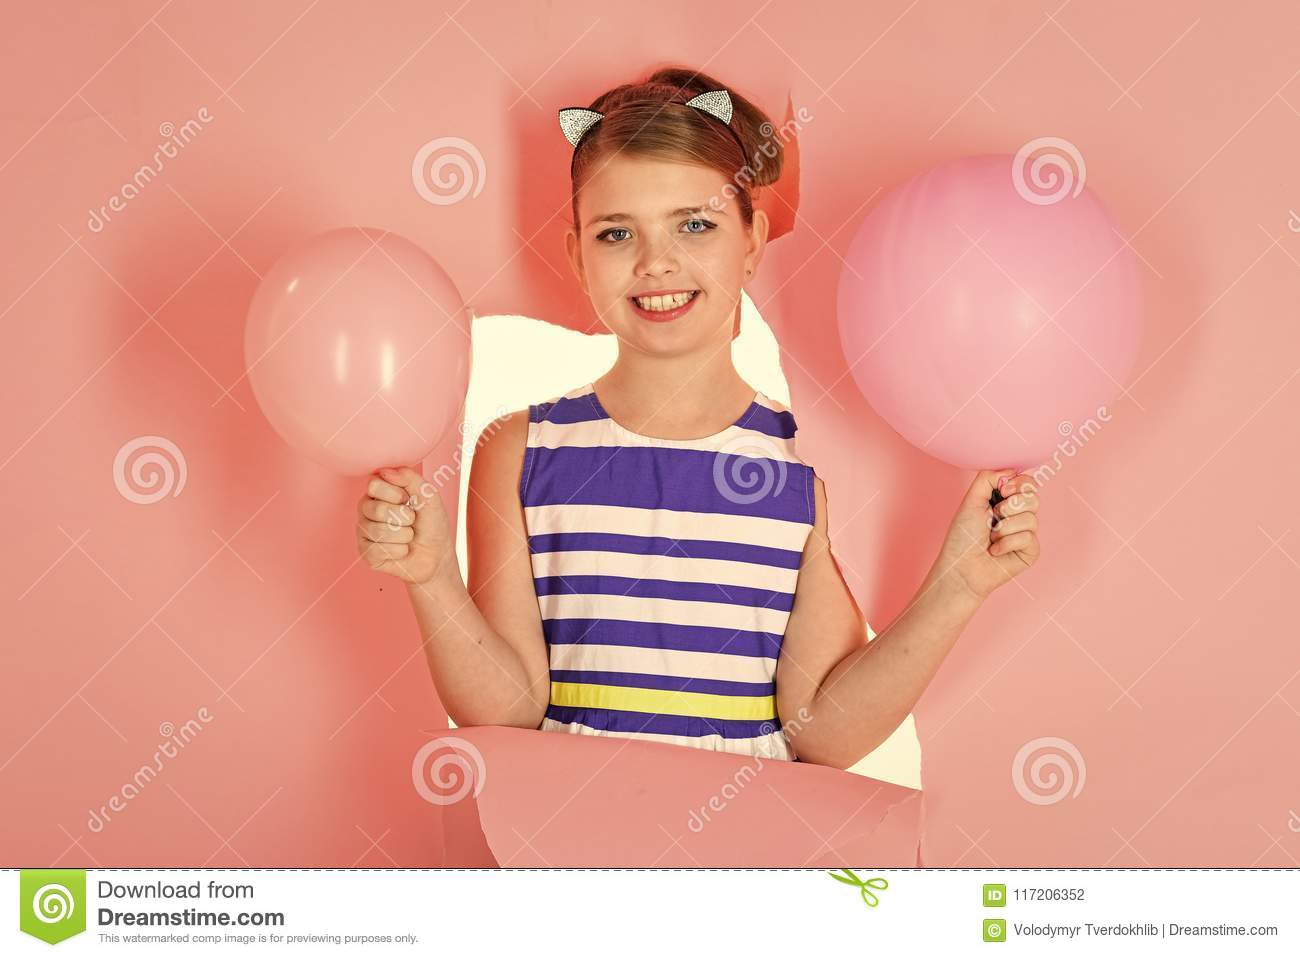 Happy girl play at home. Happy kid having fun. Funny lovely child having fun in children room with balloons